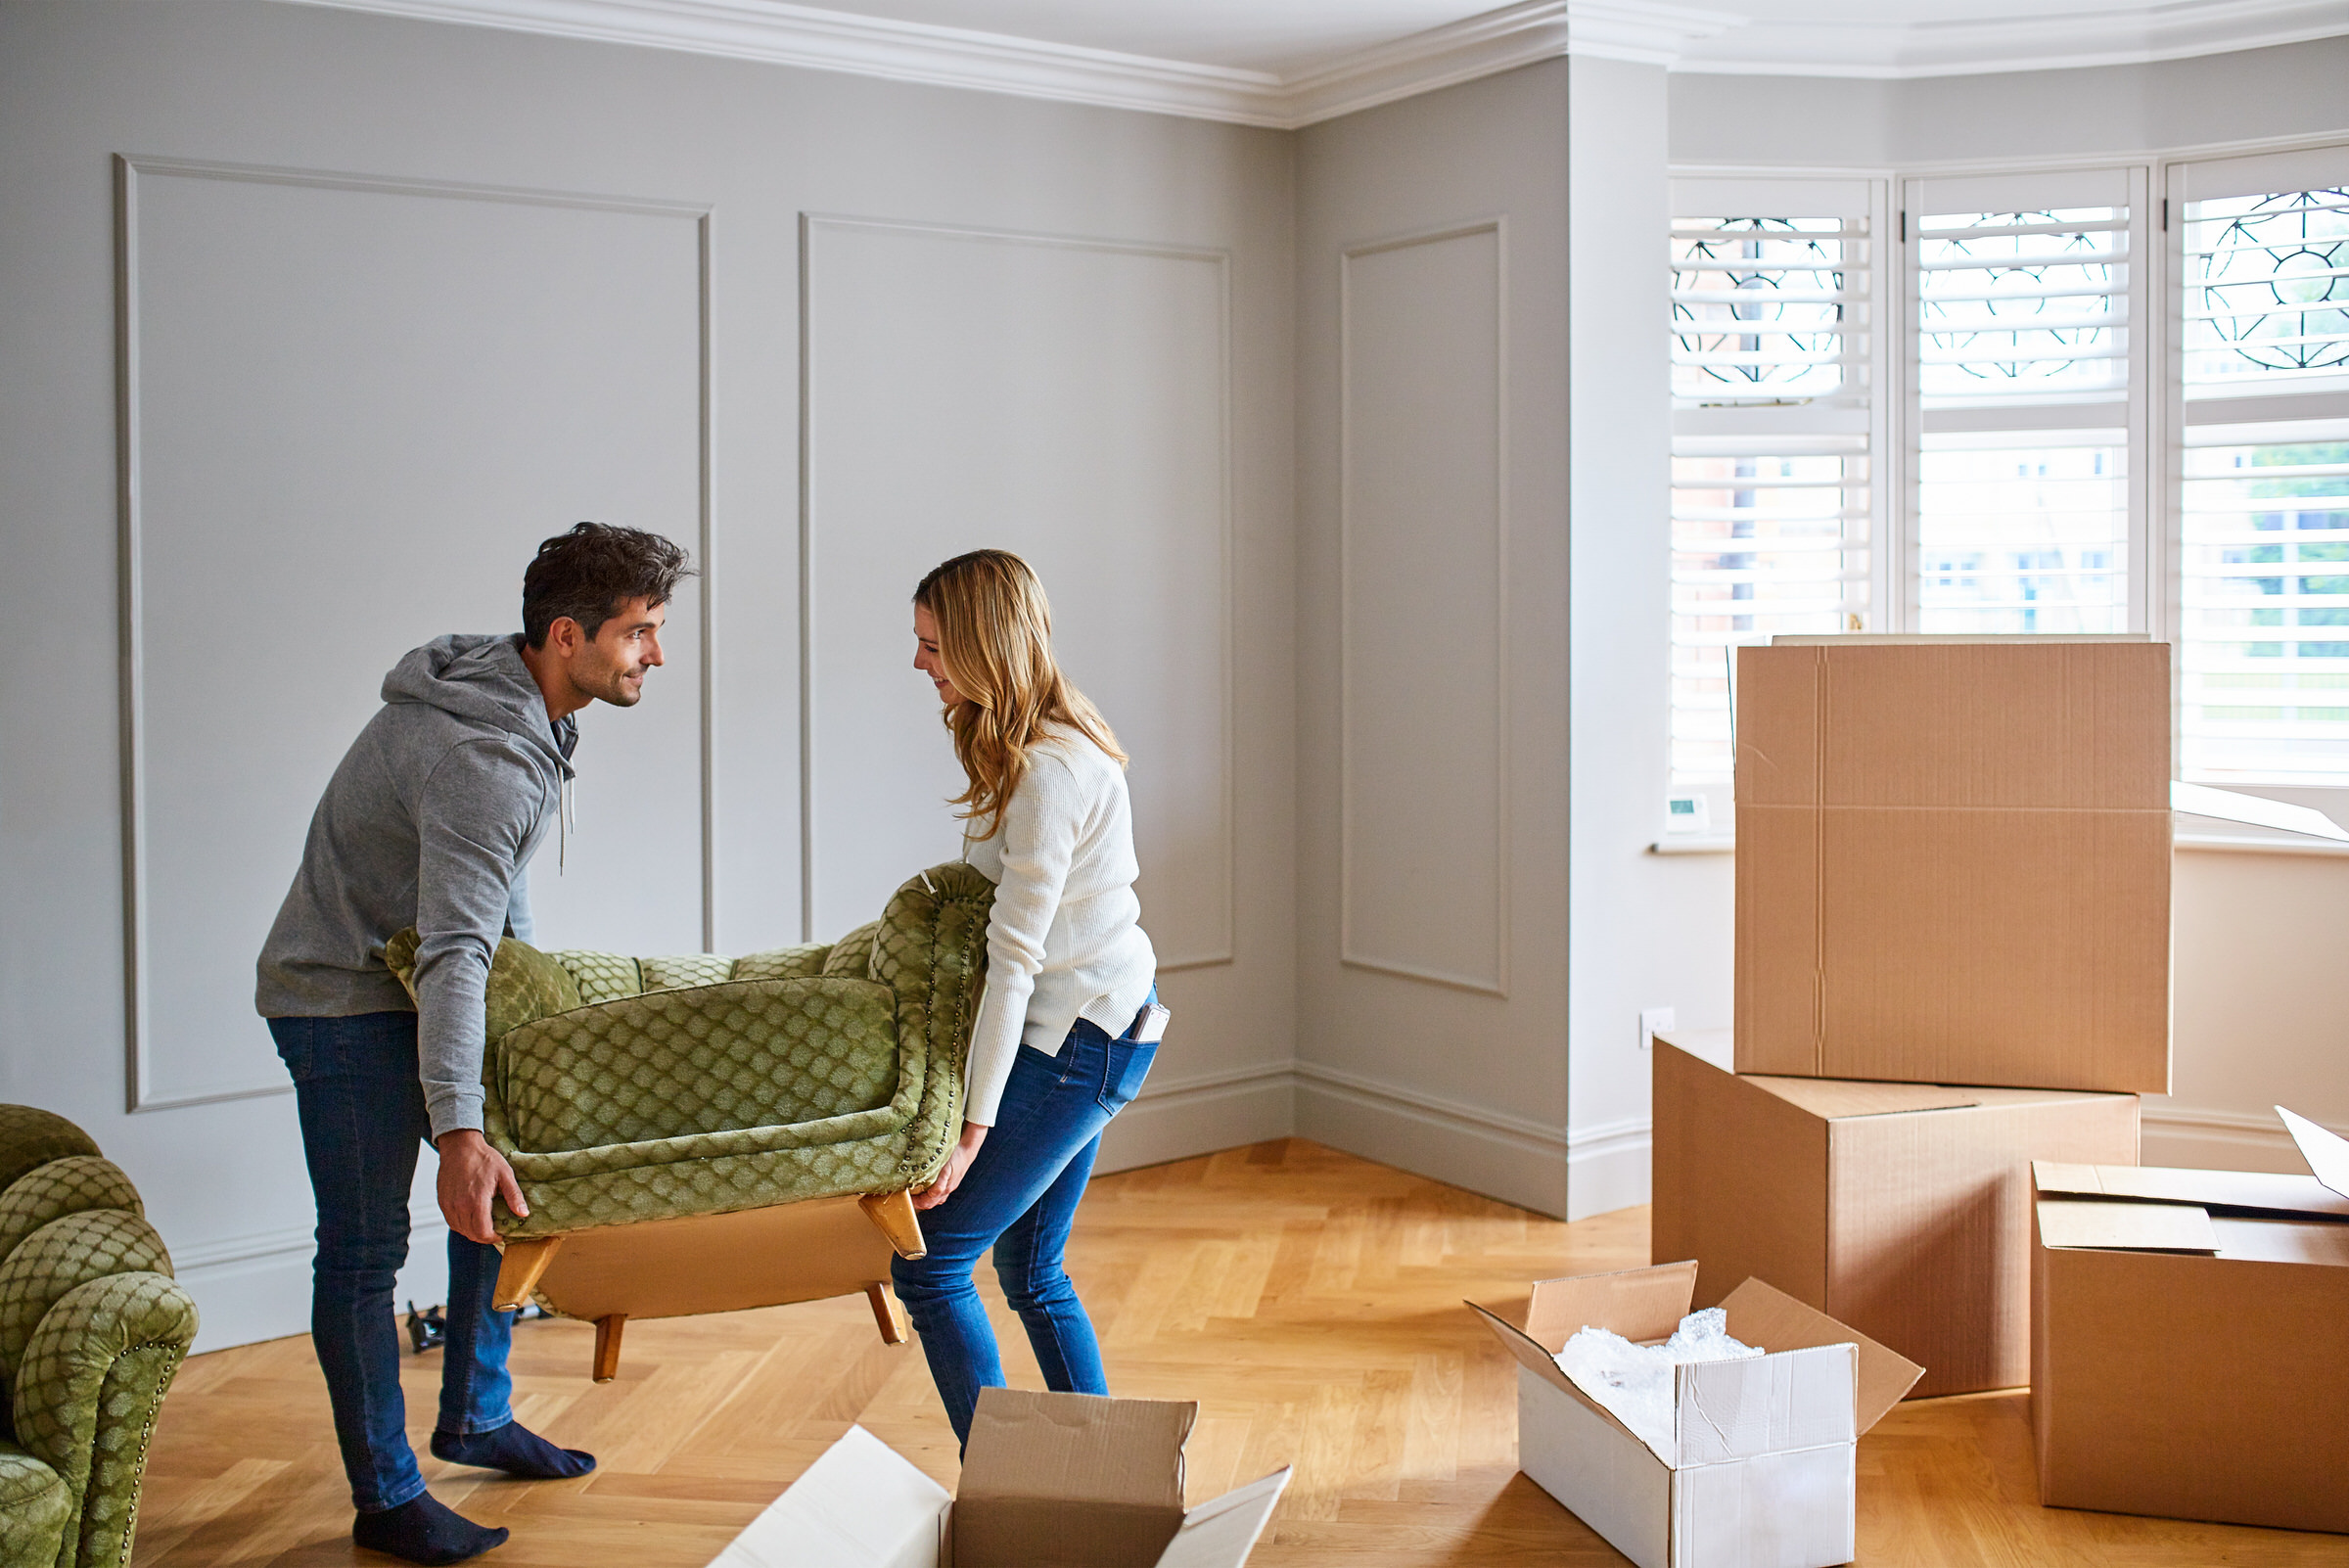 House moving made easy with a luton van from hire fleet